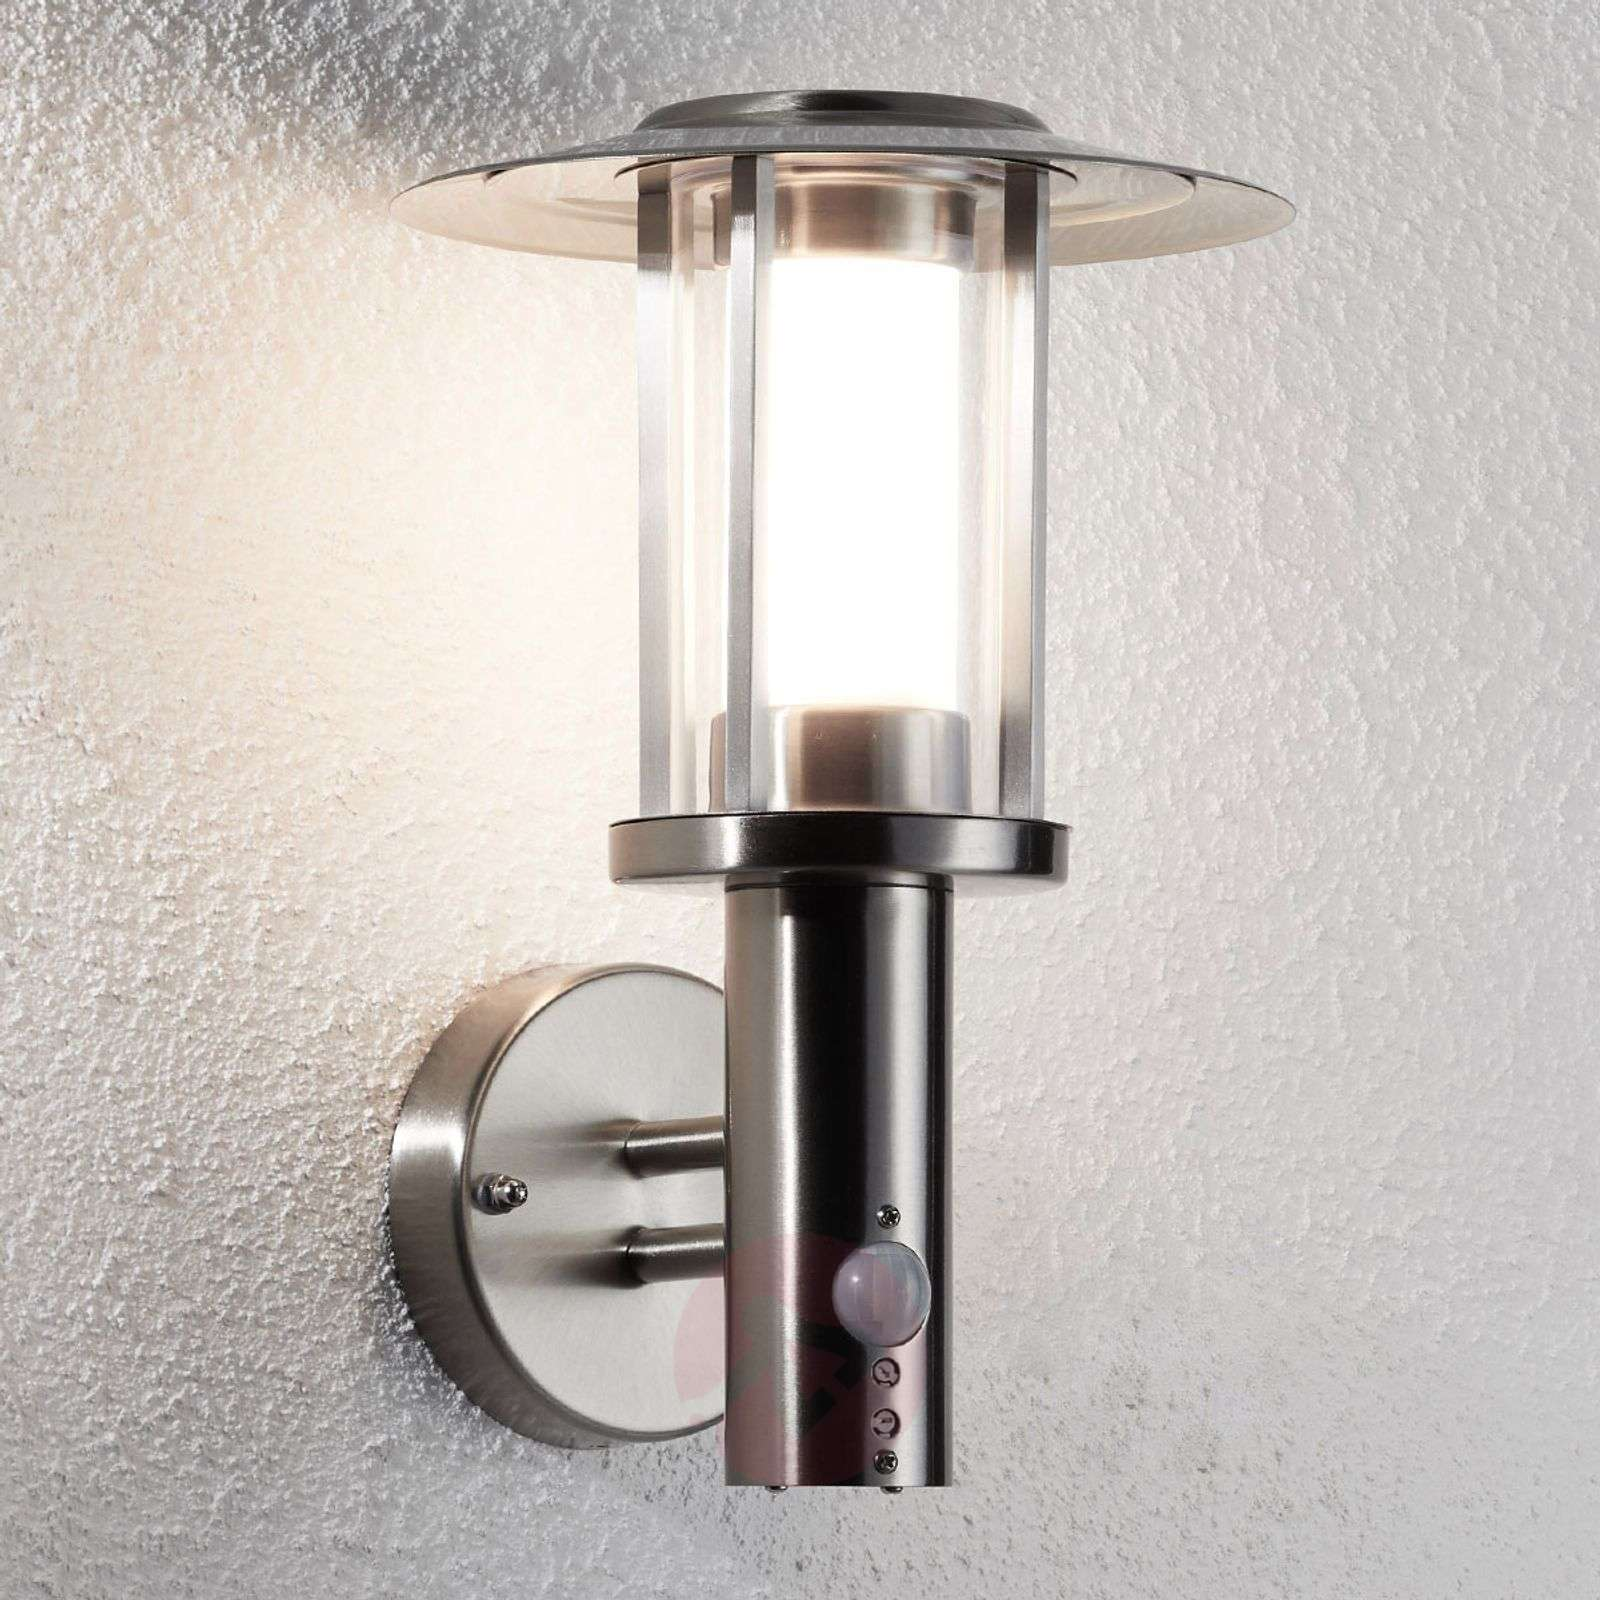 678c9187a6c LED outdoor wall lamp Gregory with sensor